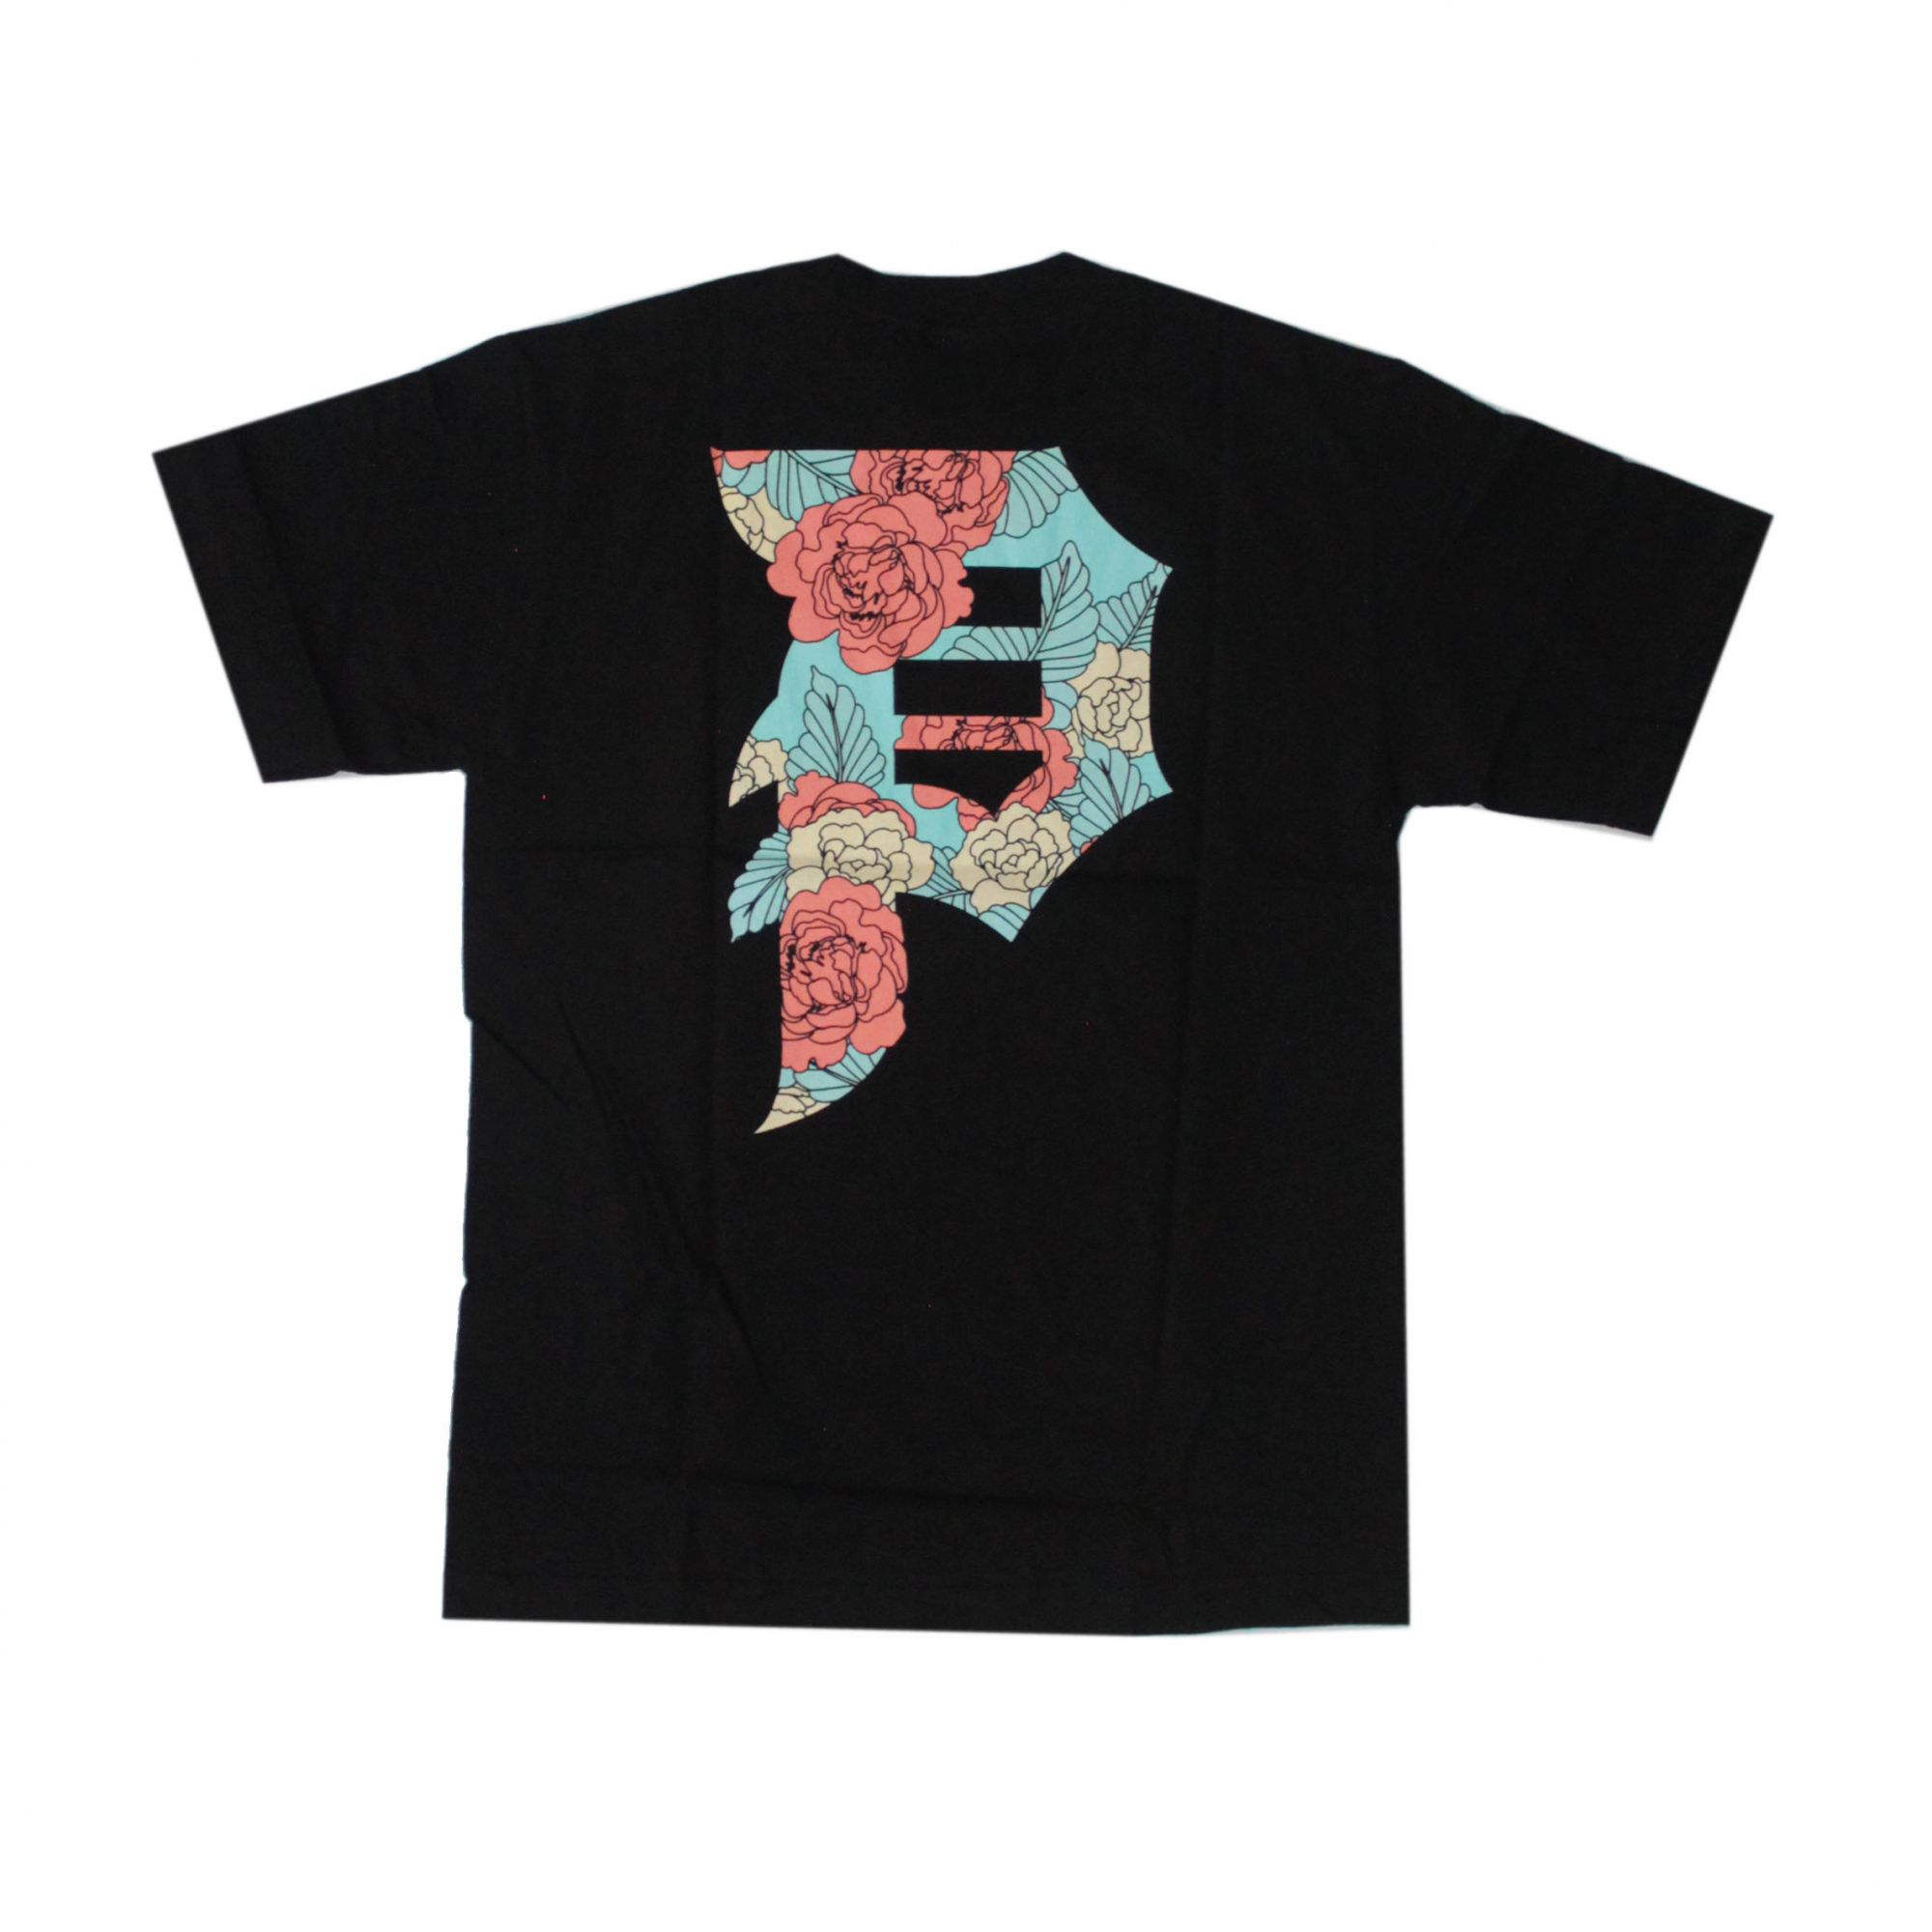 Camiseta Primitive Dirty P Casual Tee Preto (Importado)